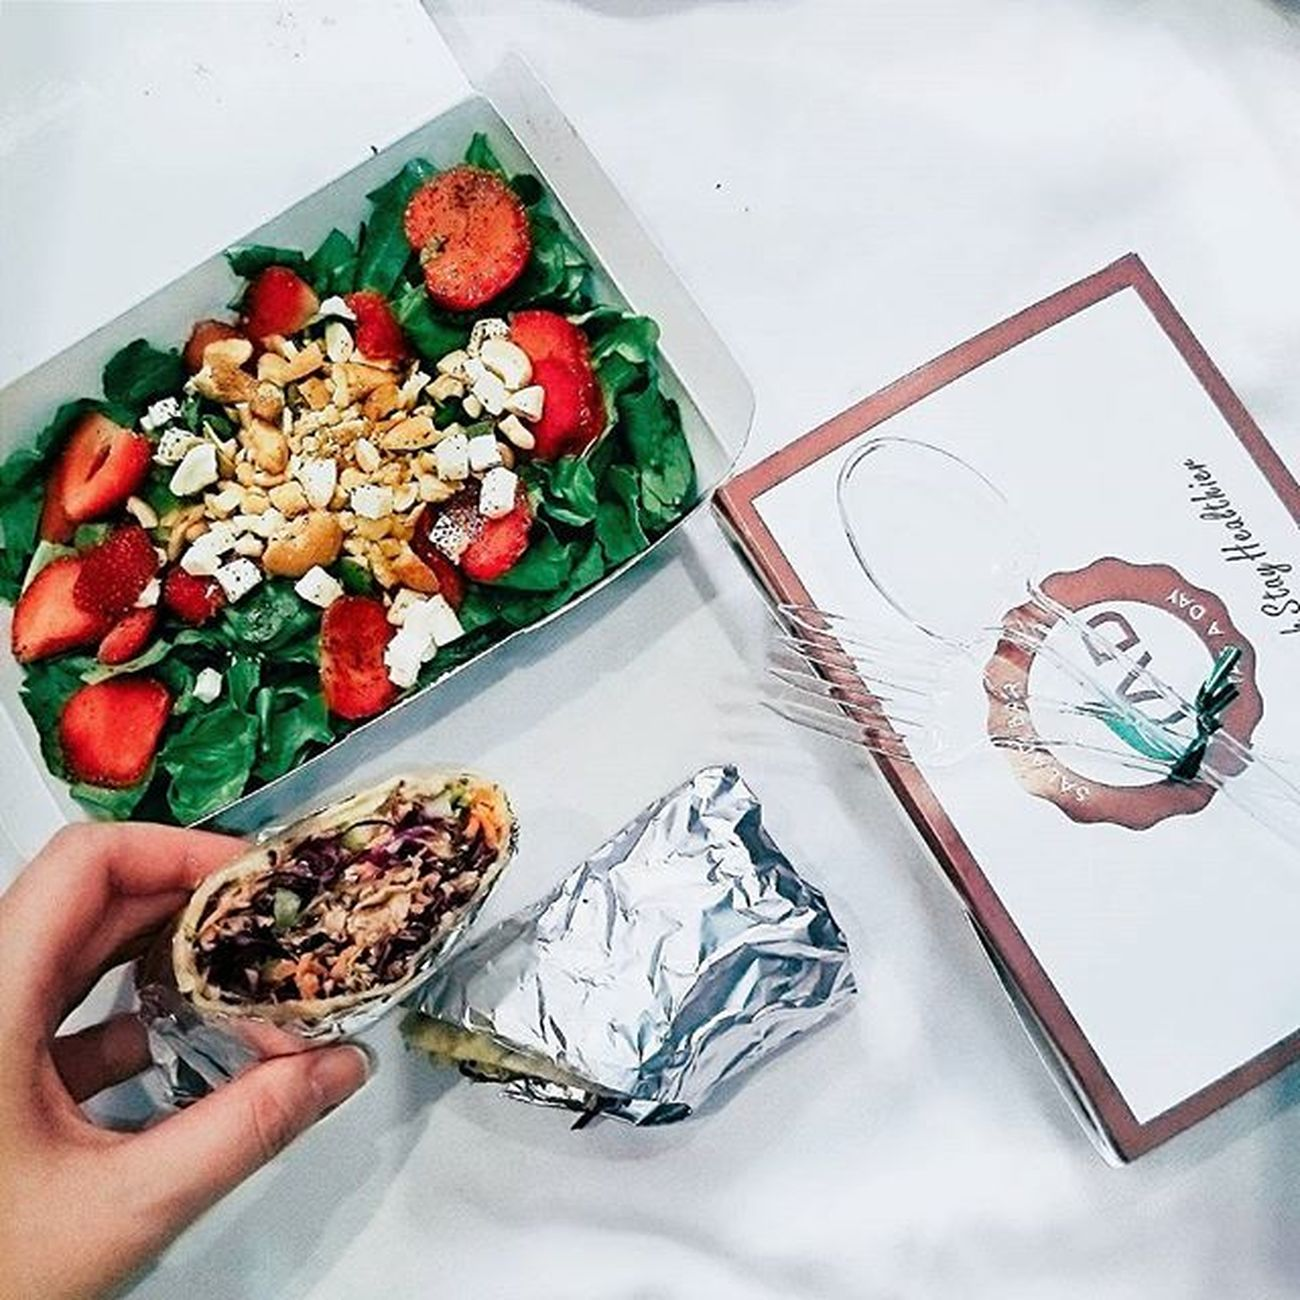 Ước gì ăn mãi mà không béo 🐷 . . . Susfoodtrip Healthyfood Strawberry Salad Tuna Wrap Vegetables Vscocam VSCO Dailypic Instadaily Instafood Foodstagram Instalike Vscofood Instahealth Foodlife Foodstyle FoodADDICT Foodie Diet Fresh Healthyeating Healthylife Healthy like4like likeforlike photooftheday handinframe